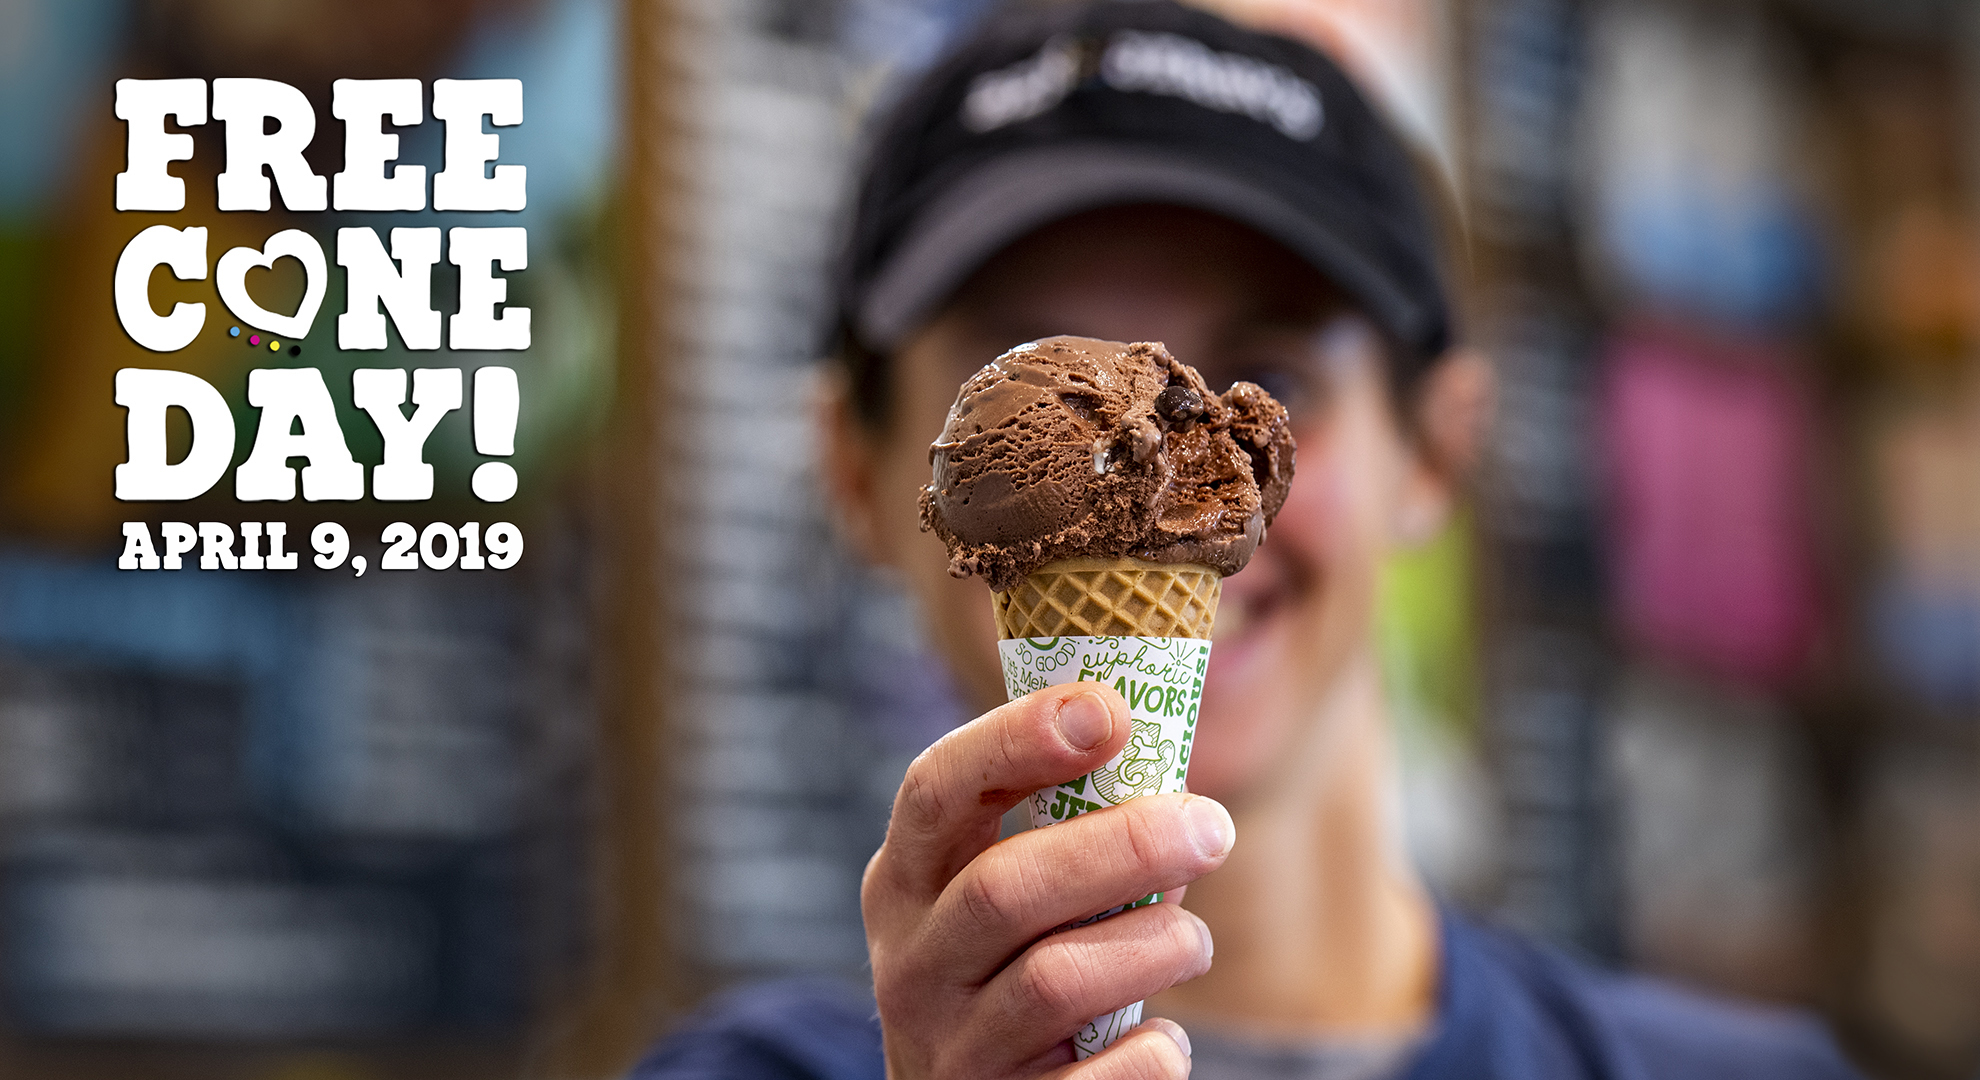 Ben & Jerry's Scoop Shops around the world will participate in Free Cone Day on April 9.